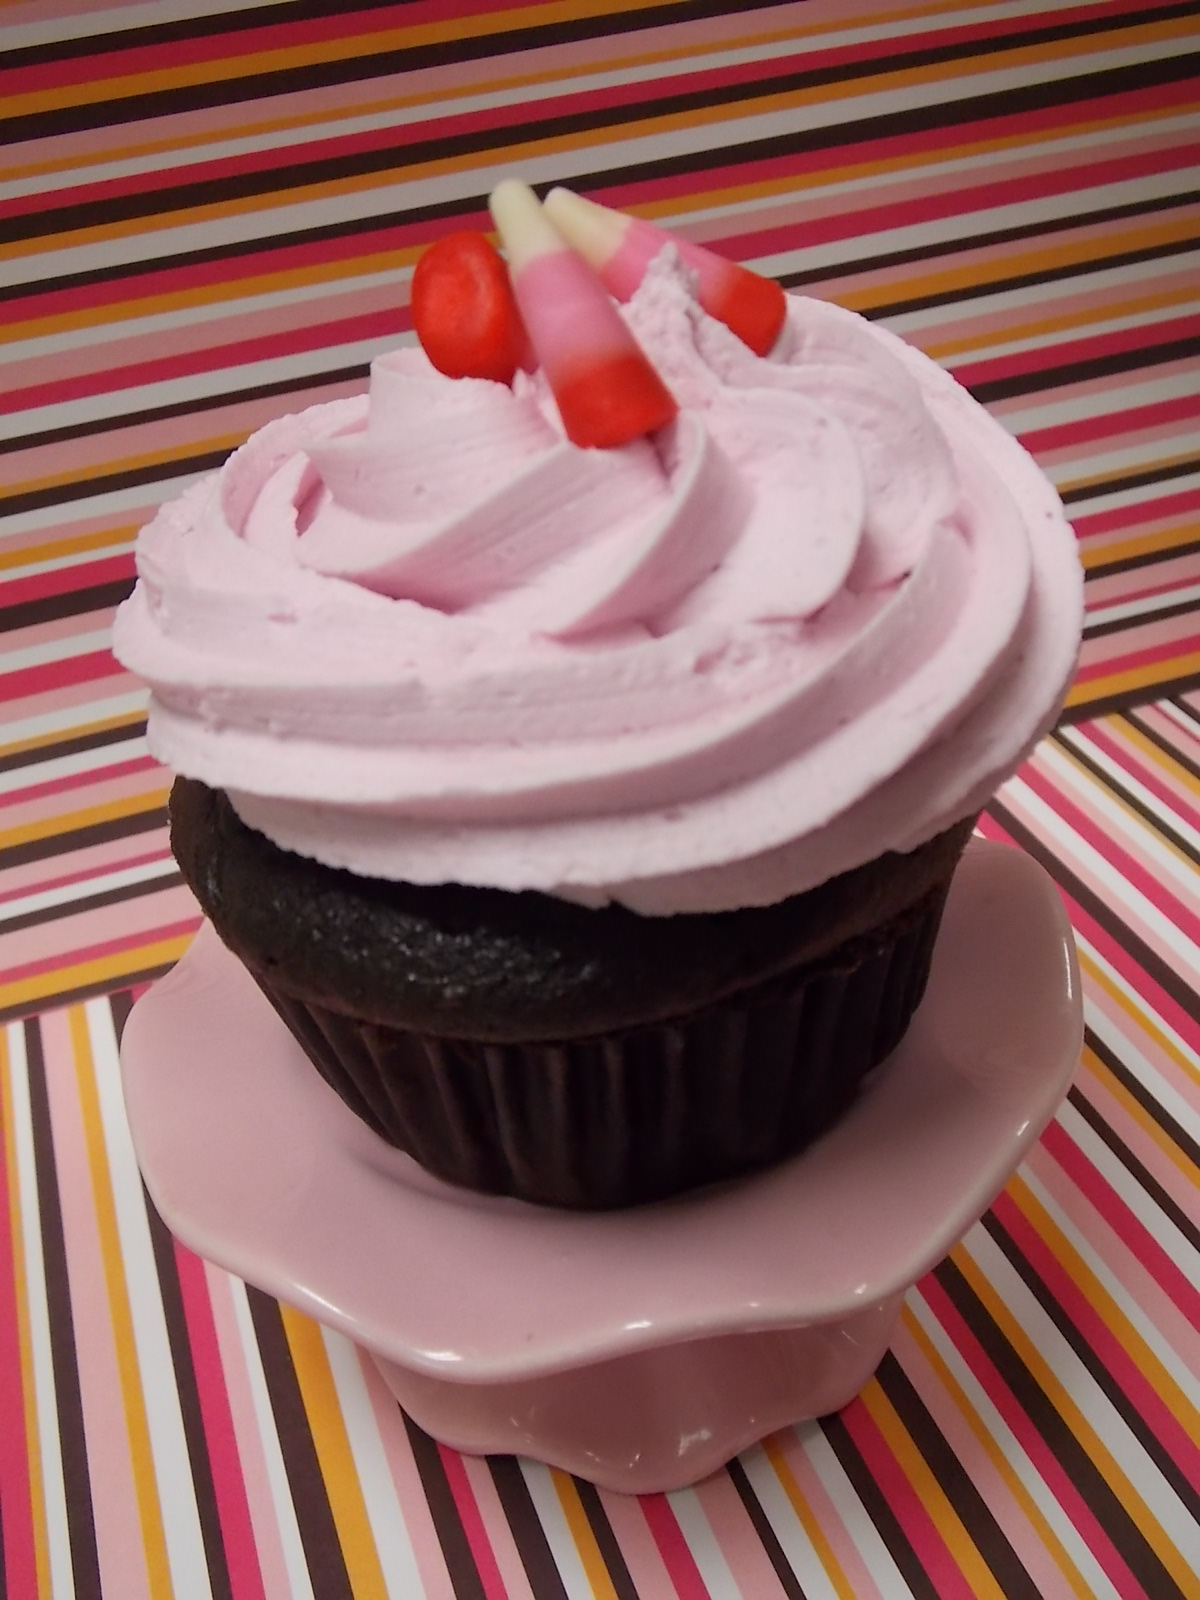 St. Valentine-A decadent chocolate cupcake with a ribbon of raspberry running through it and topped with our signature Raspberry buttercream